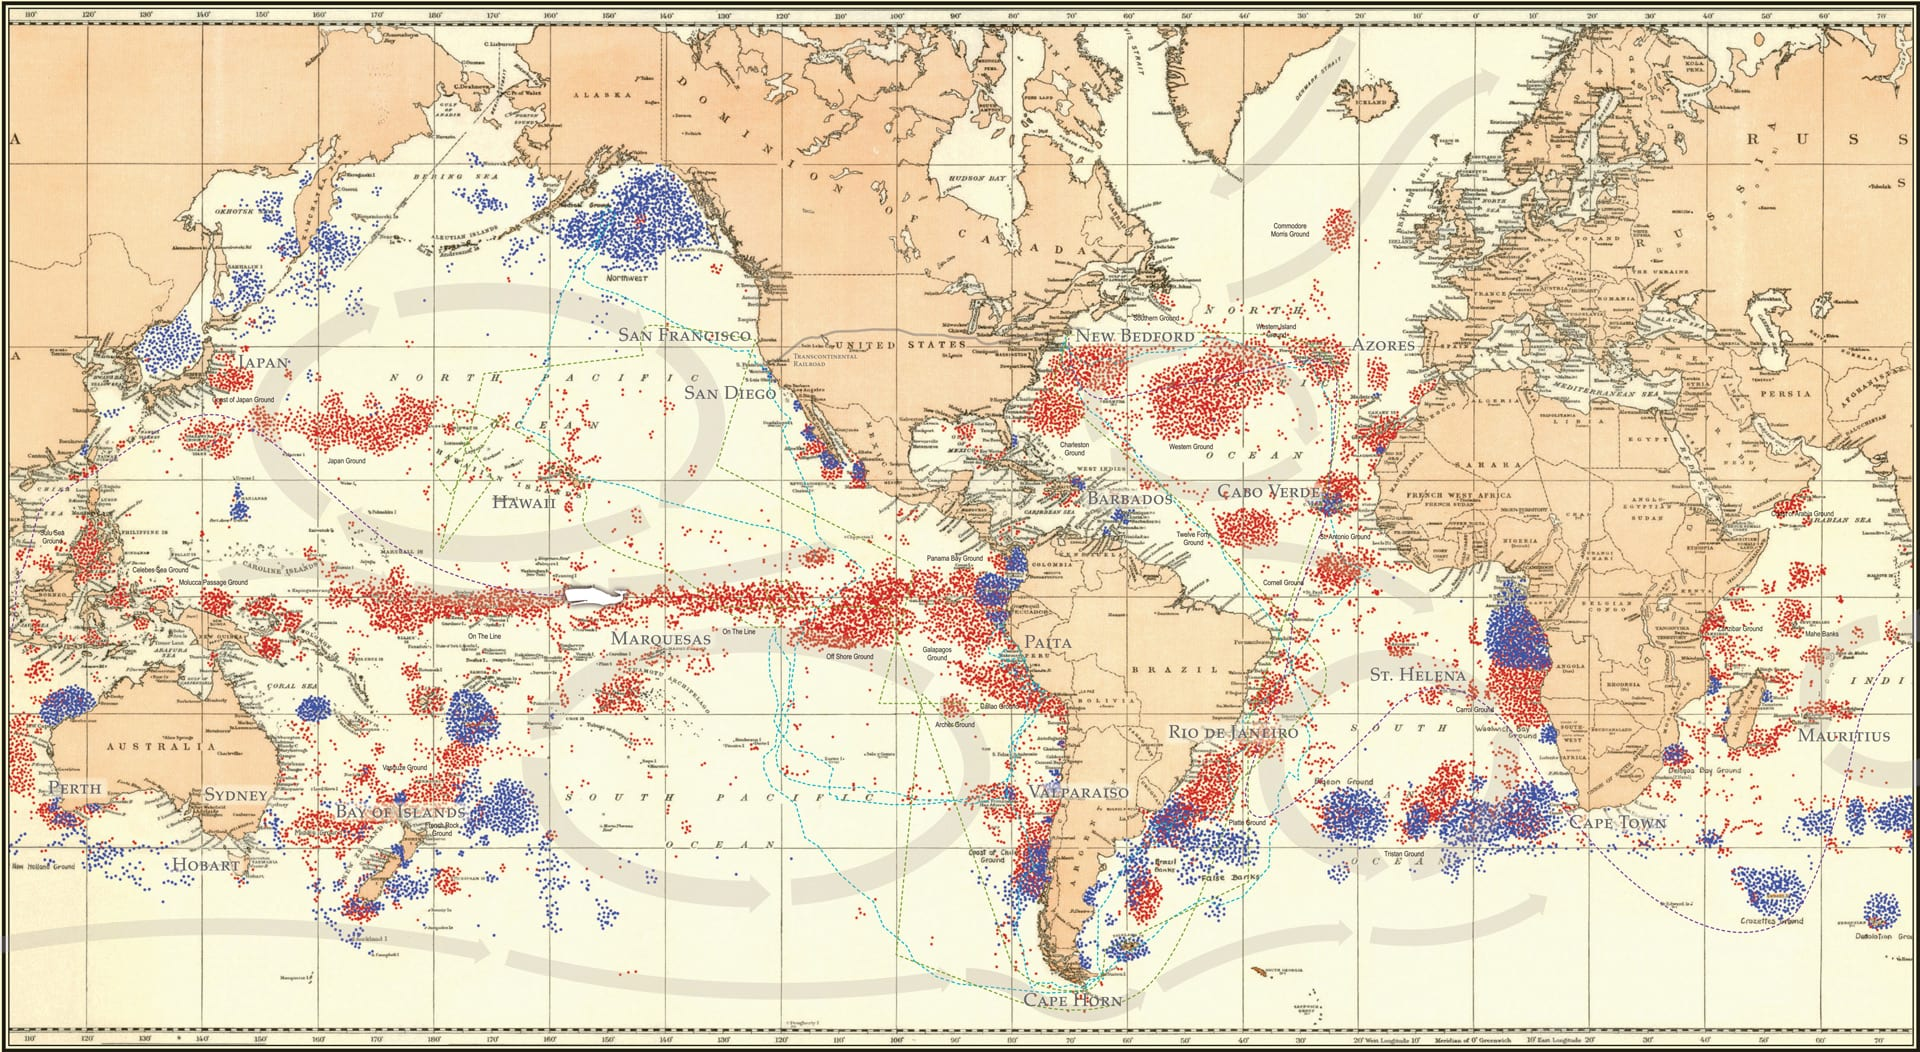 Whalers from New England covered a wide span of the globe, often traveling to remote locations that merchant and military vessels didn't venture to. This composite whaling map, collated from four original maps prepared under the direction of Charles Haskins Townsend, shows the historical distribution of various types of whales taken by New England/American whaling ships between 1785-1913. Each color represents the position of a ship on a day when one or more whales were taken. (Image courtesy of the New Bedford Whaling Museum)